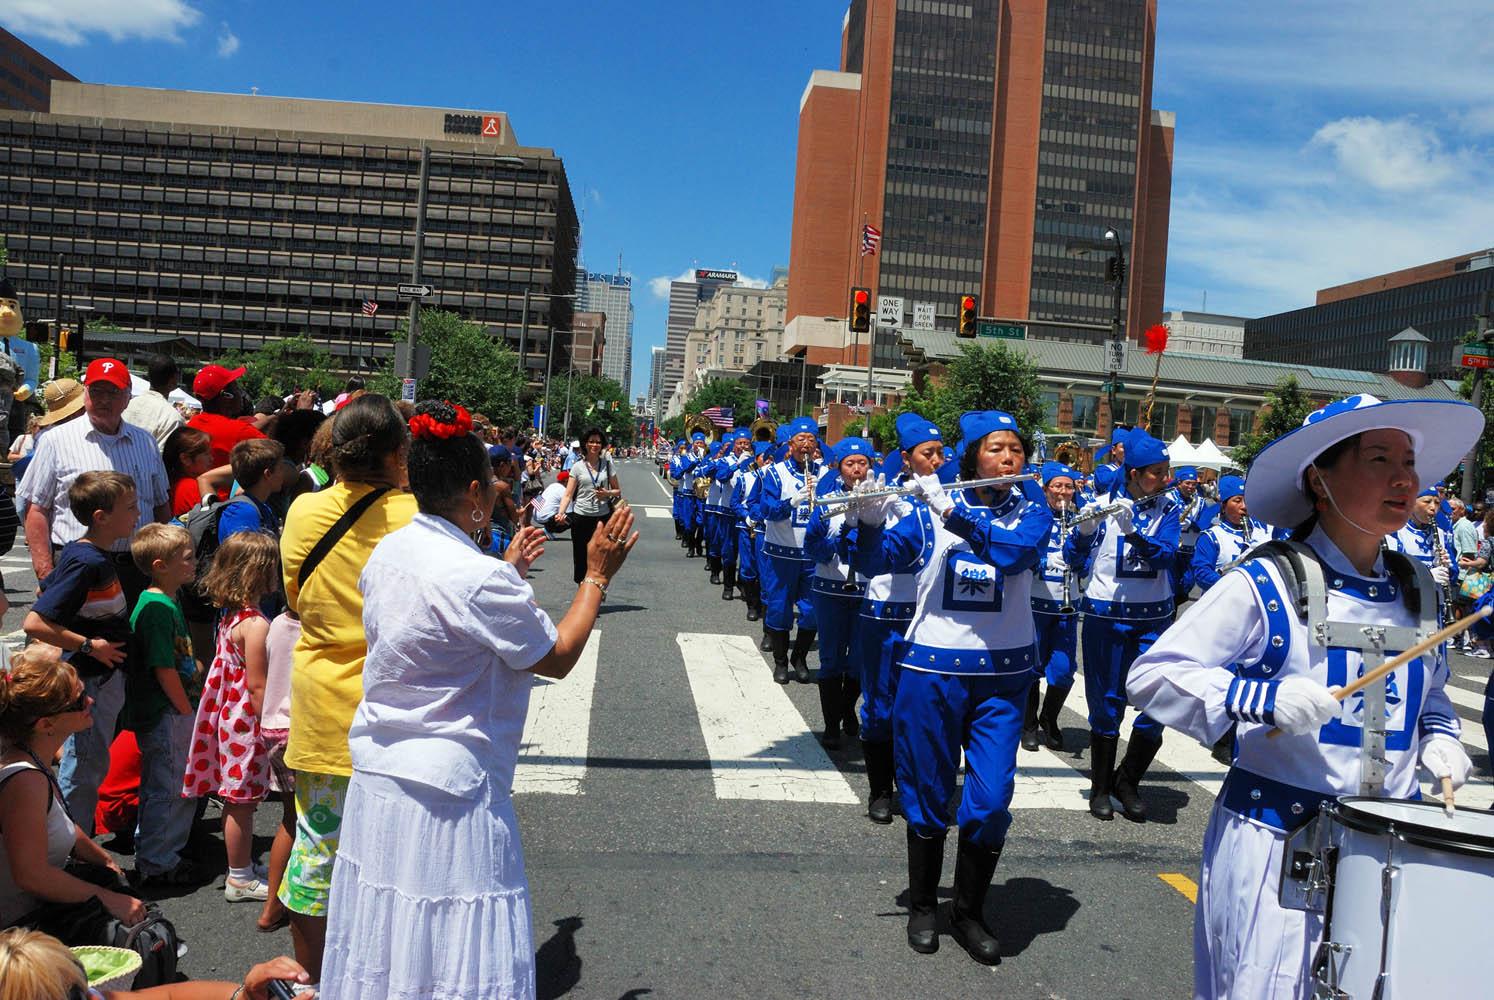 Audience welcomes the performance of the Falun Dafa Divine Land Marching Band.